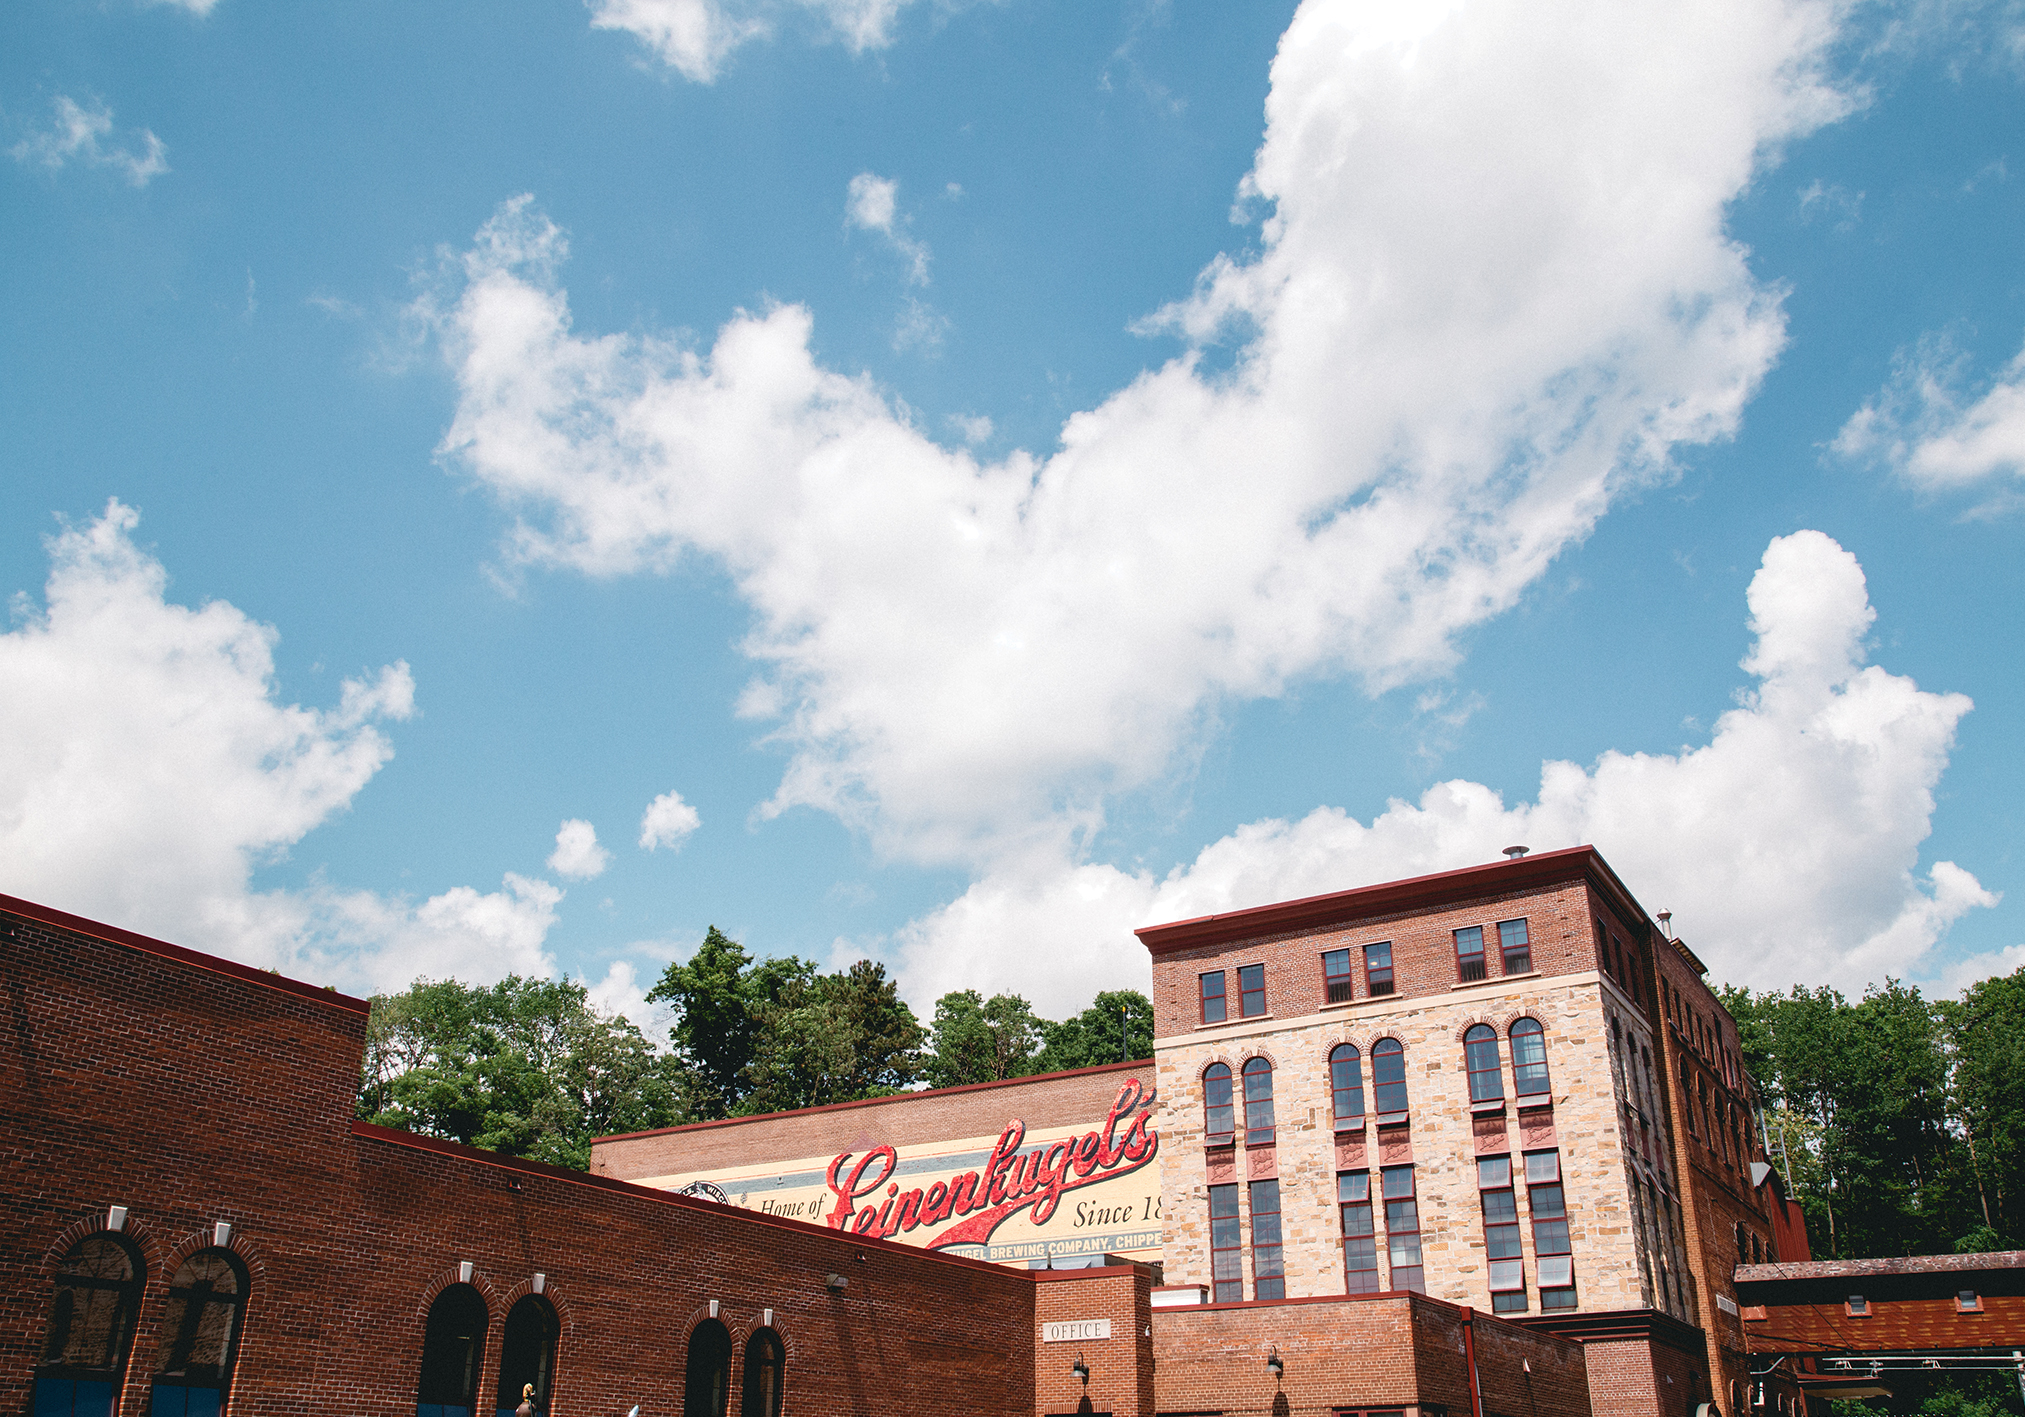 Leinenkugel's Brewery Join Us Here in Chippewa Falls, WI